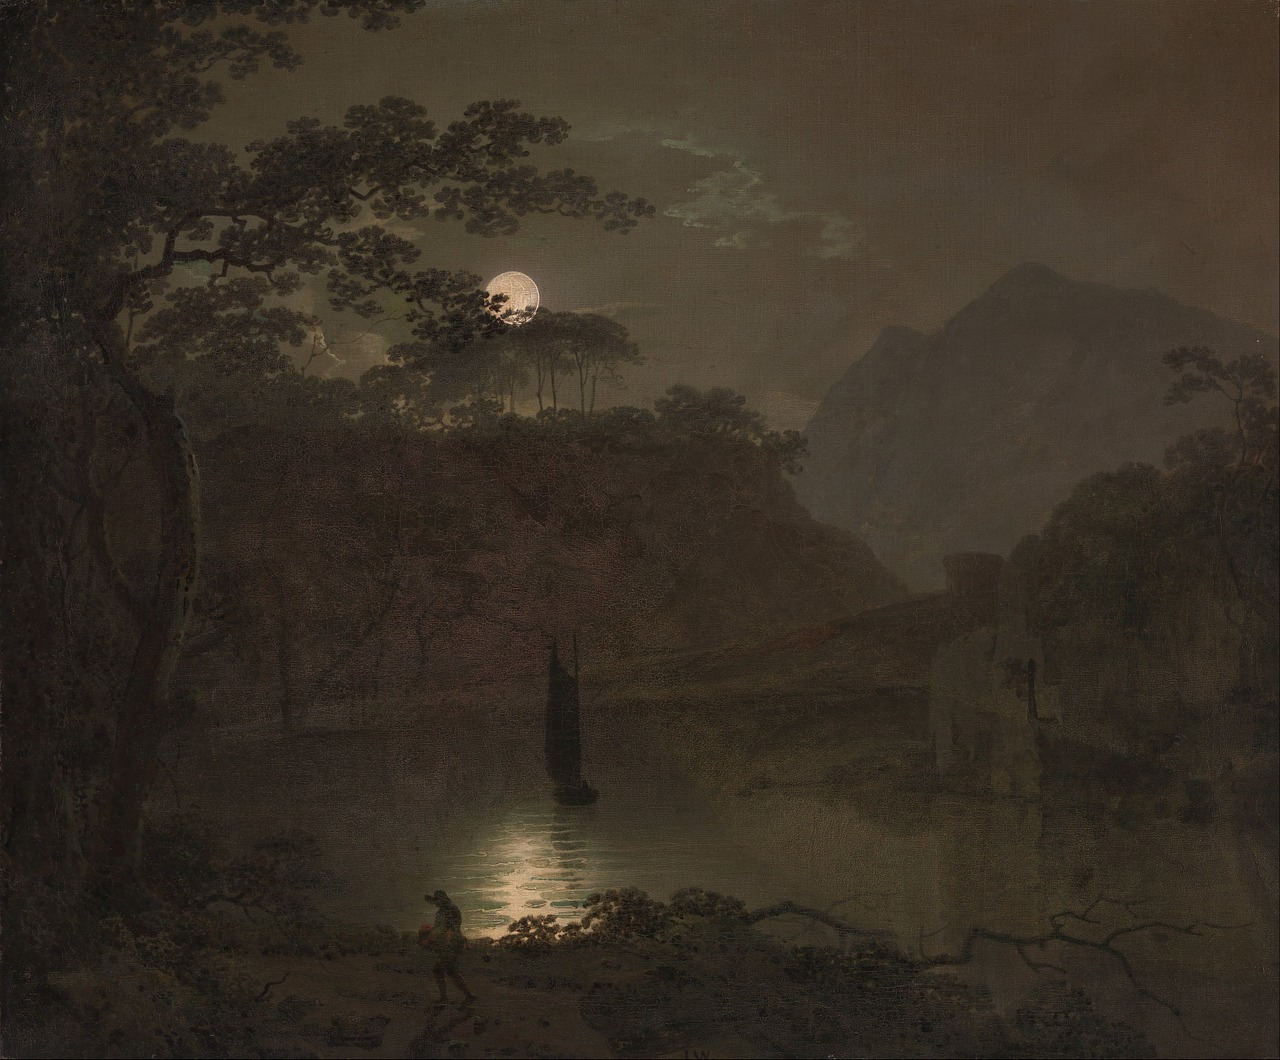 Full Moon - sweet eery joseph-wright-81532_1280